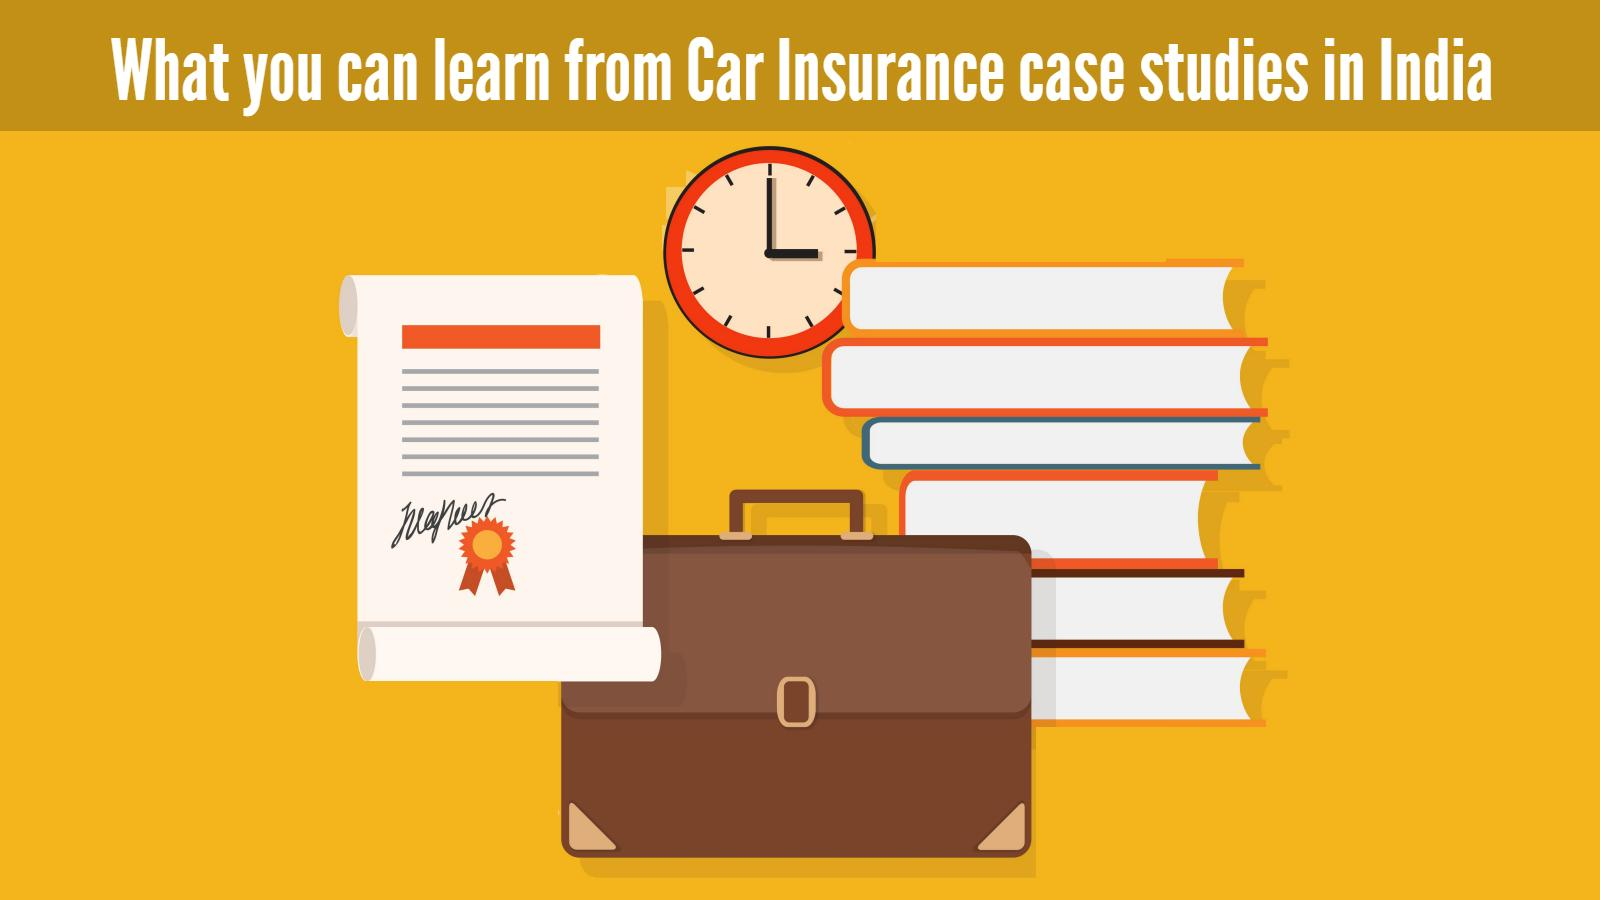 Things to learn from car insurance case studies